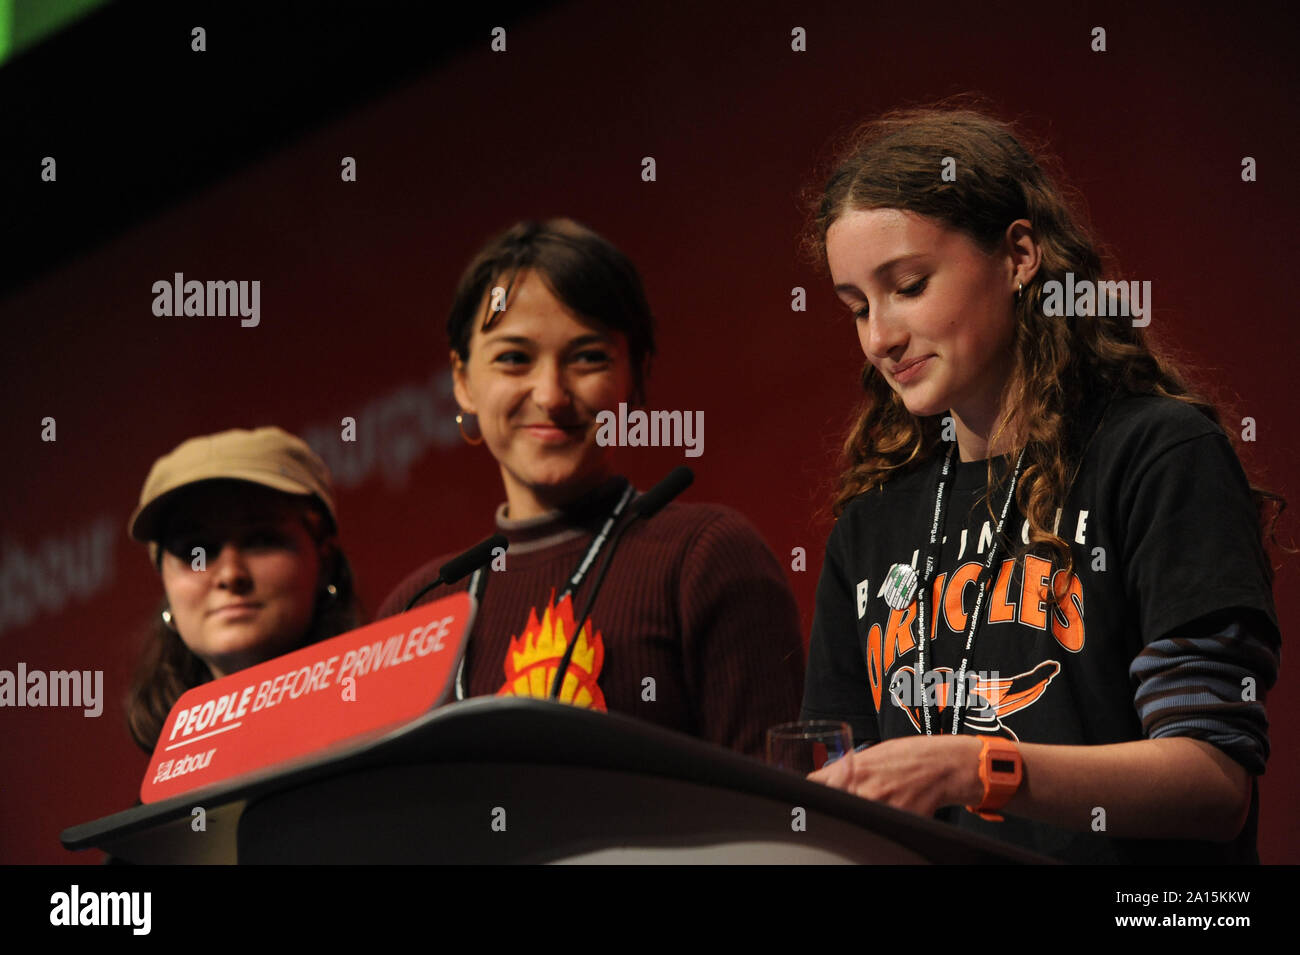 Brighton, UK. 24th Sep, 2019. Uma Krieger climate striker, (third from the left) and fellow activists, delivers her speech to delegates in support of the Labour PartyÕs Green New Deal, during the fourth day of the Labour Party annual conference at the Brighton Centre. Credit: Kevin Hayes/Alamy Live News Stock Photo